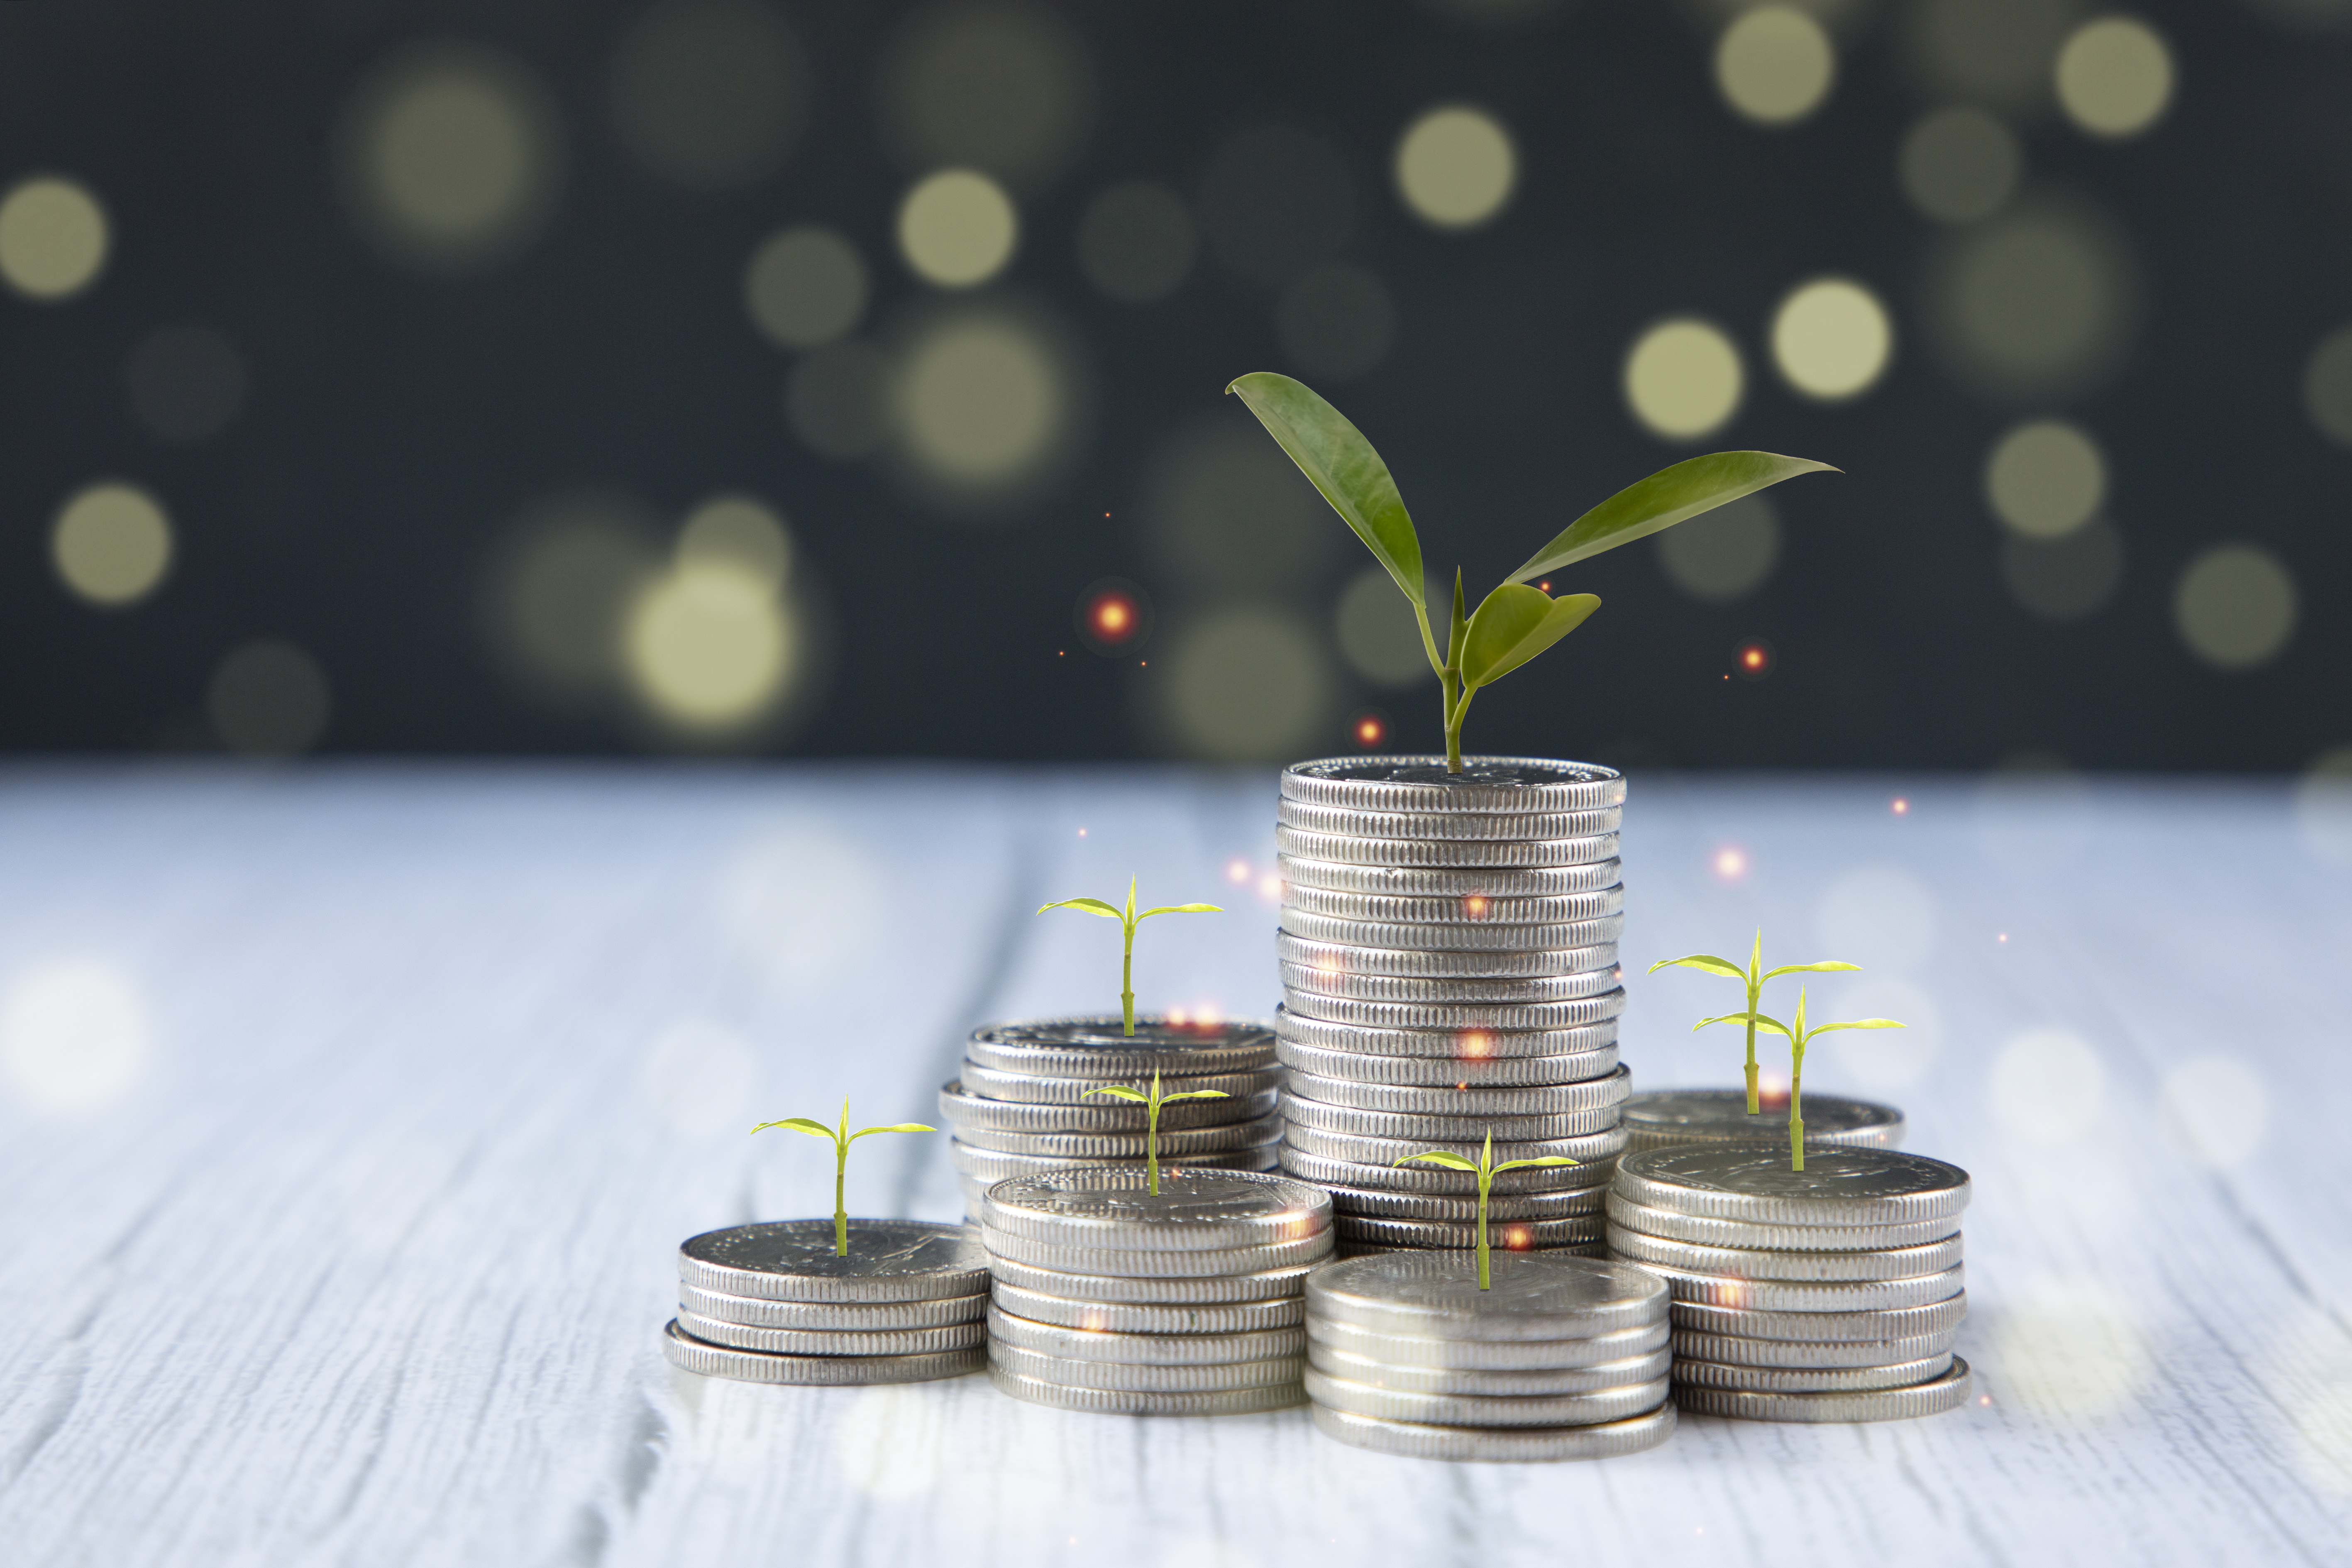 bigstock-Coins-Stack-And-Leaf-With-Lin-400707752